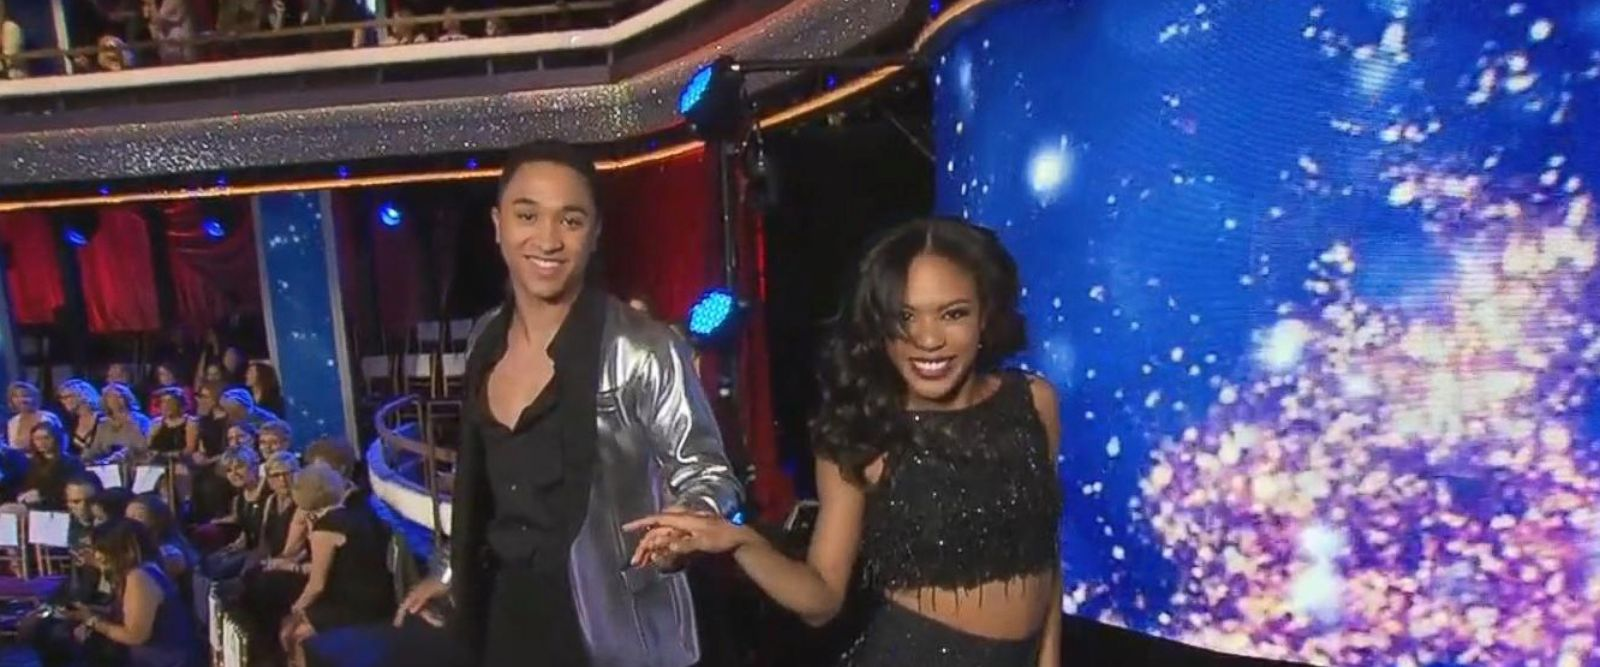 VIDEO: Go inside the ballroom before night 2 of 'Dancing With the Stars'